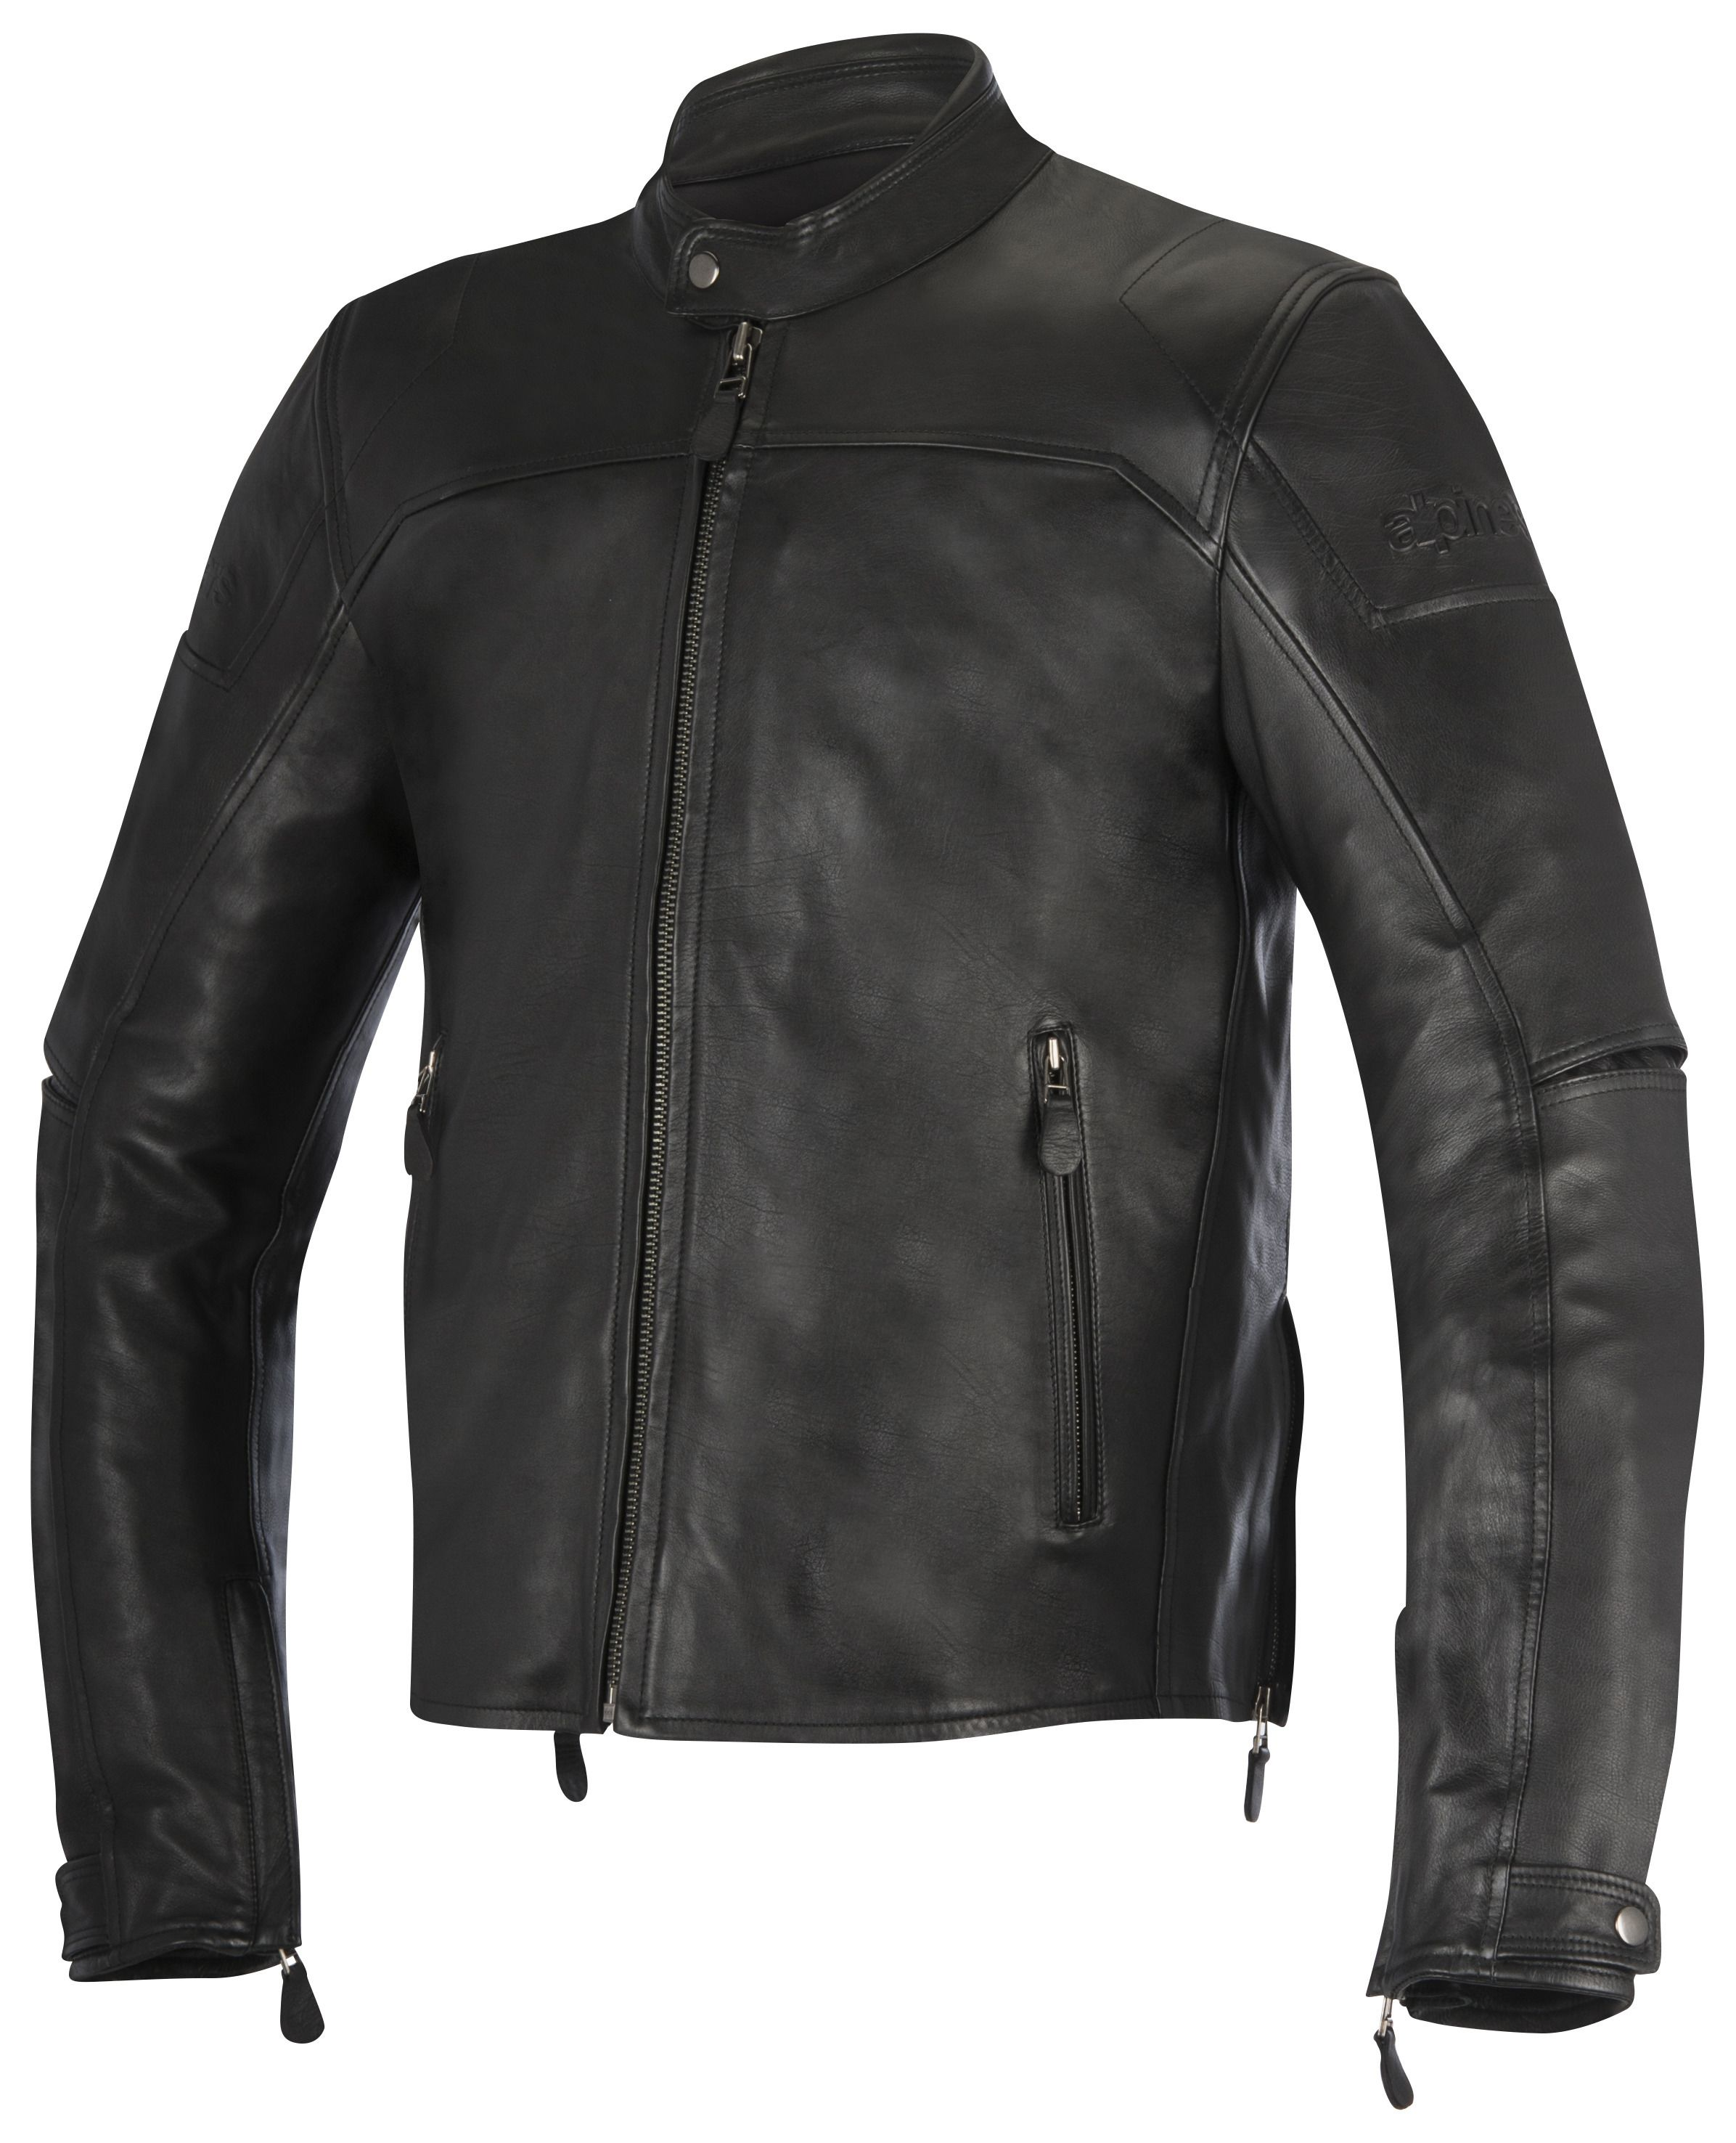 Alpine Motorcycle Gear >> Alpinestars Brera Leather Jacket - RevZilla